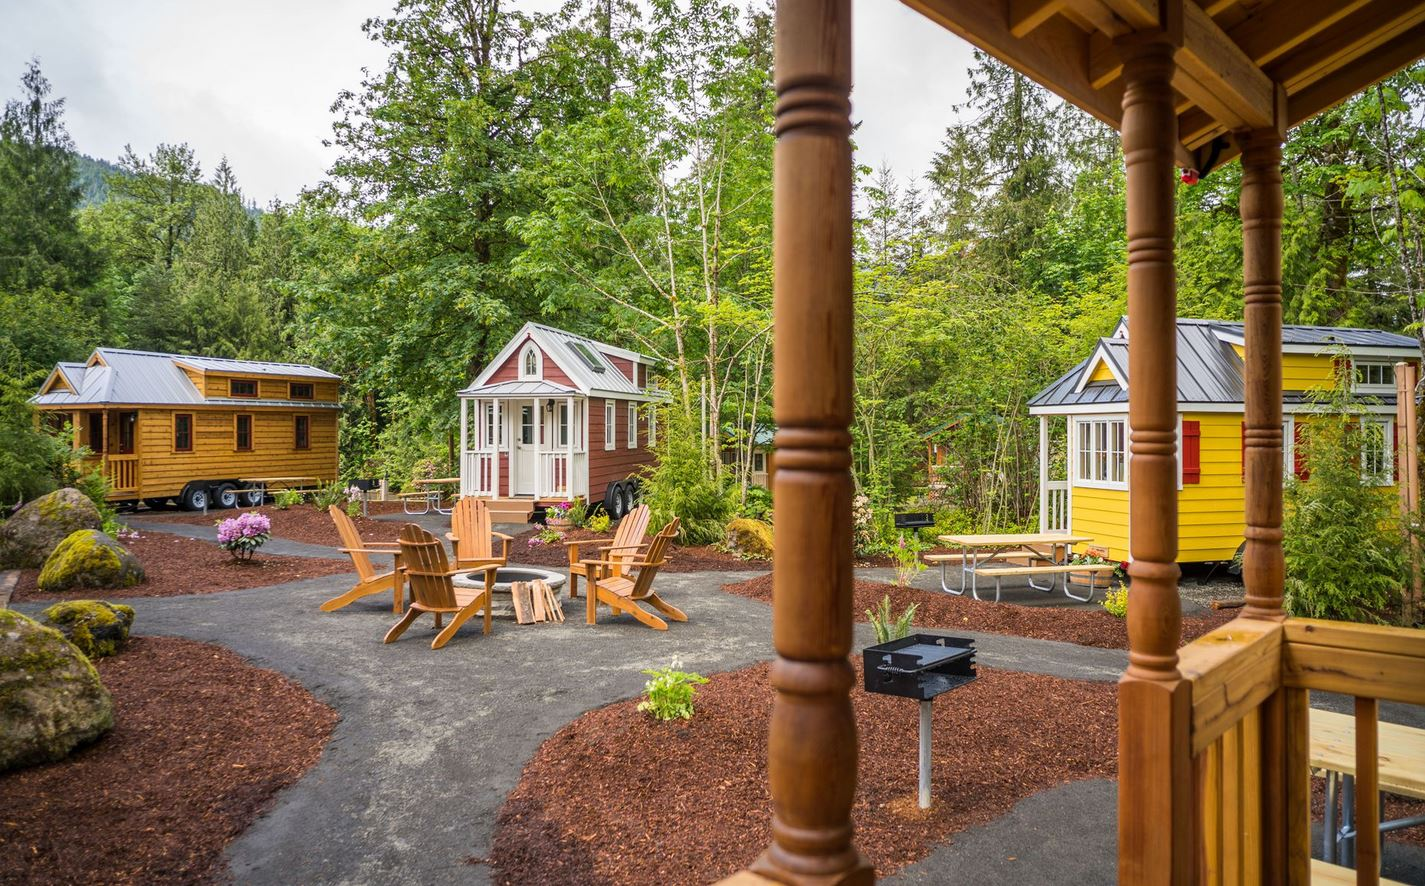 Vacationing in a Tiny House